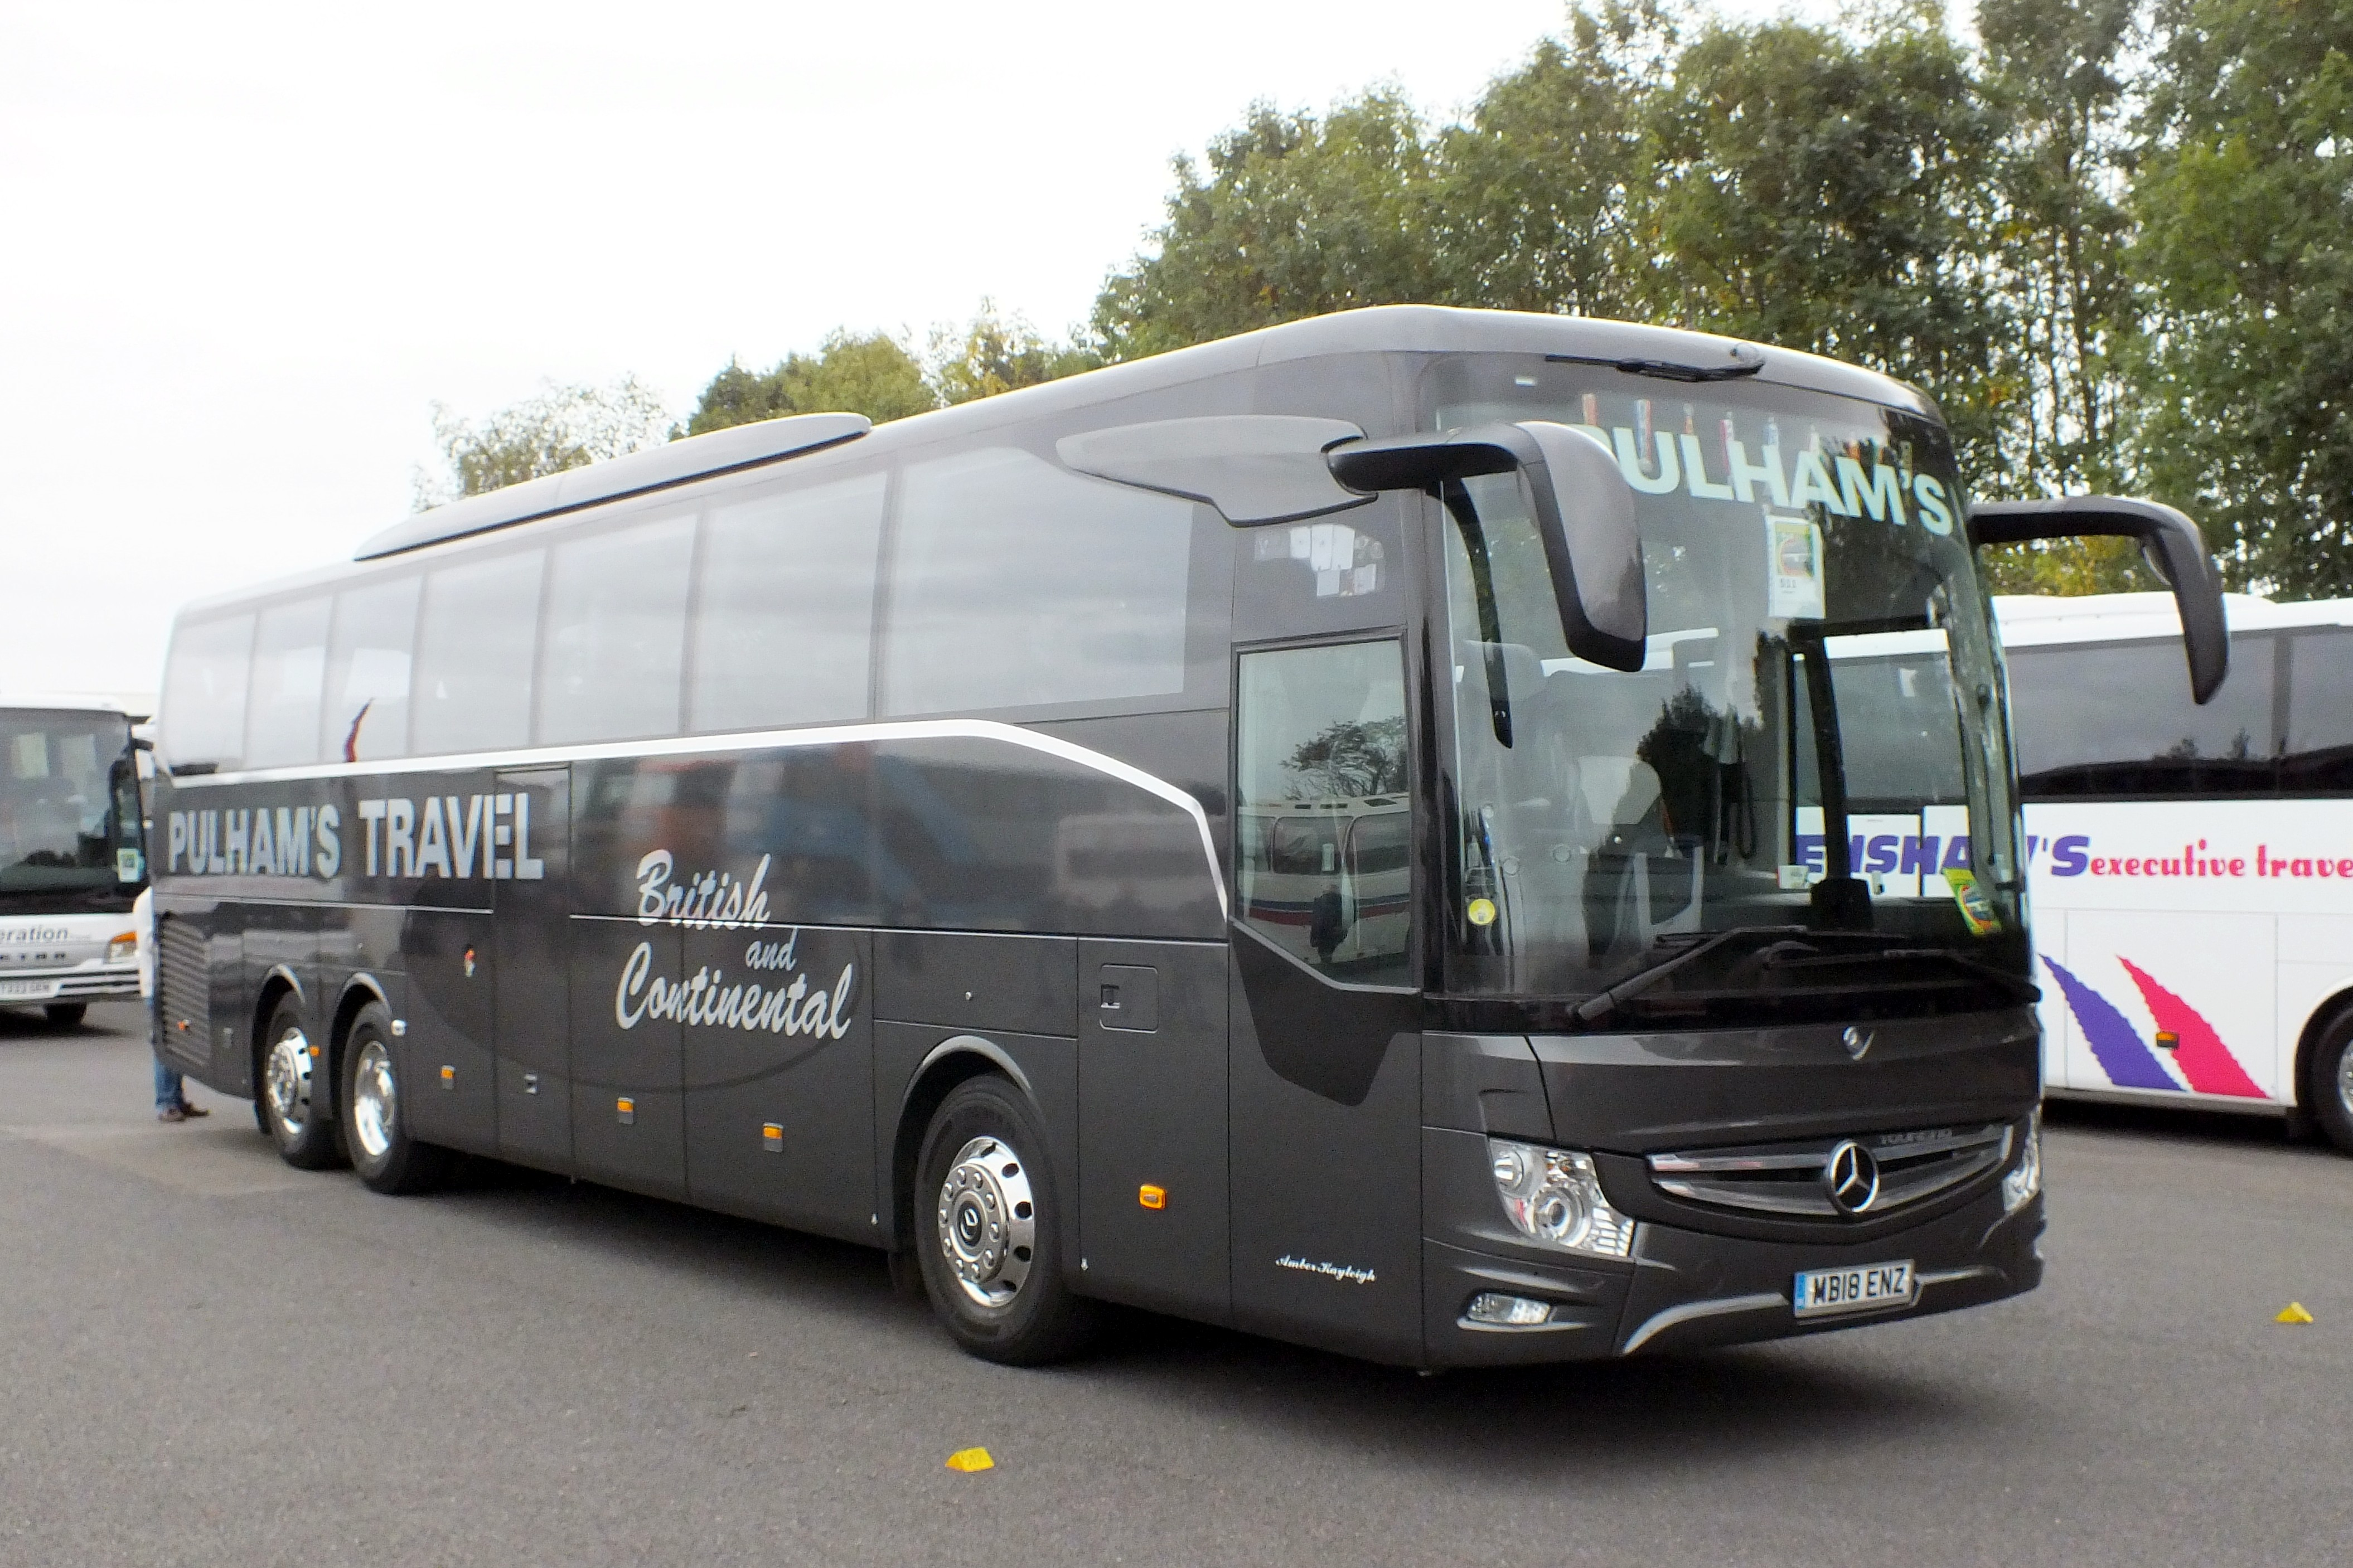 30 September 2018 Showbus Donington 078.JPG